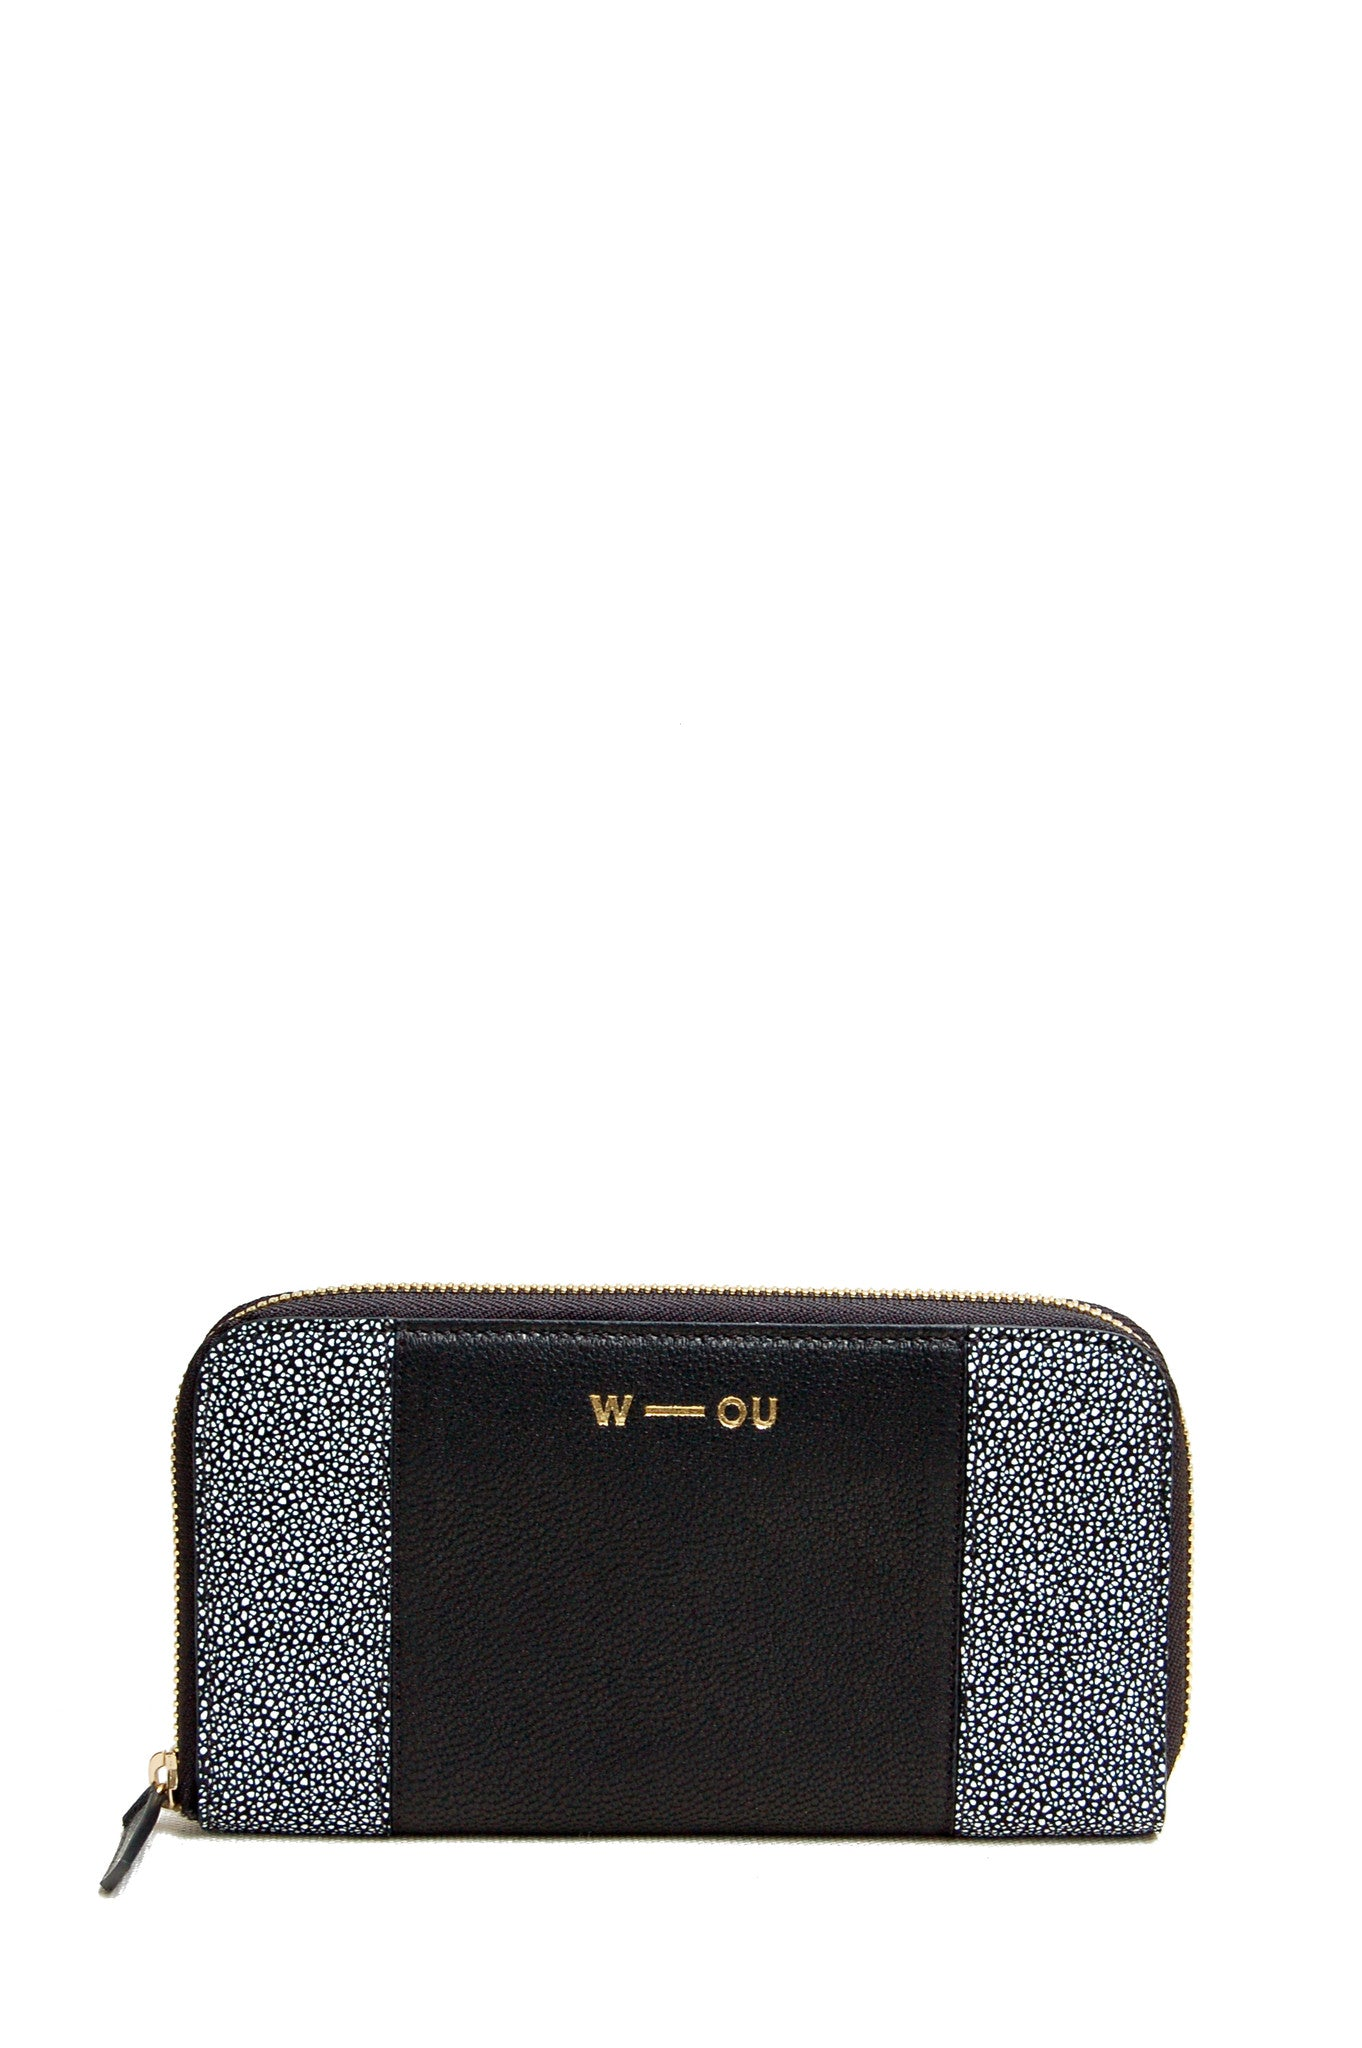 Wendee Ou: Georgie purse black & grey | Accessories > Wallets,Accessories -  Hiphunters Shop